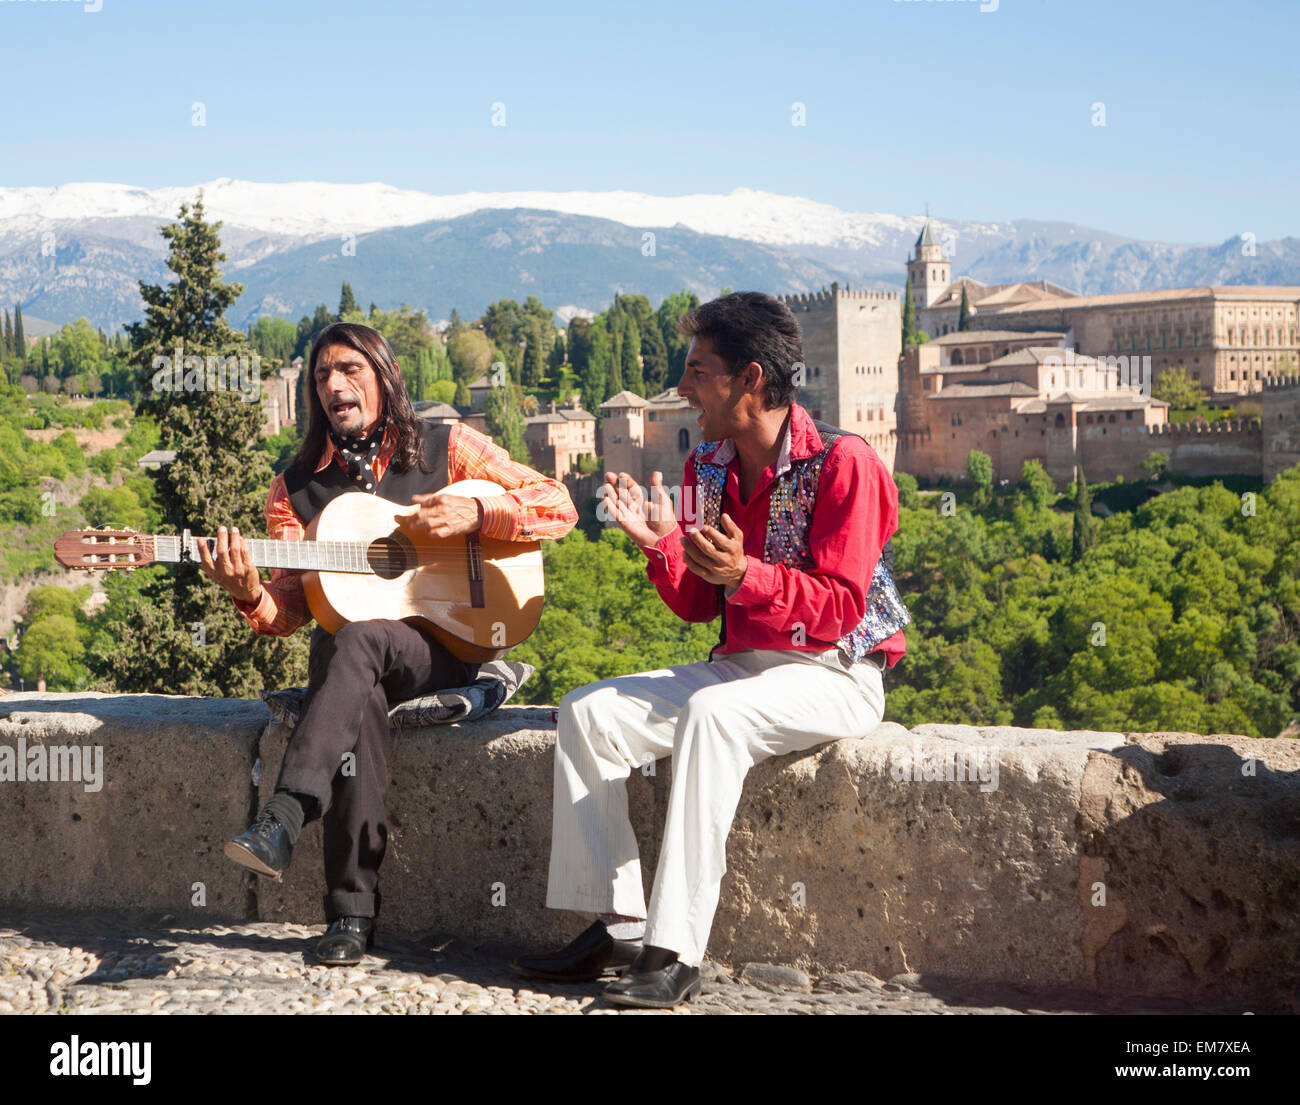 Flamenco musicians play with a backdrop of the Alhambra and snow topped Sierra Nevada mountain, Granada, Spain - Stock Image